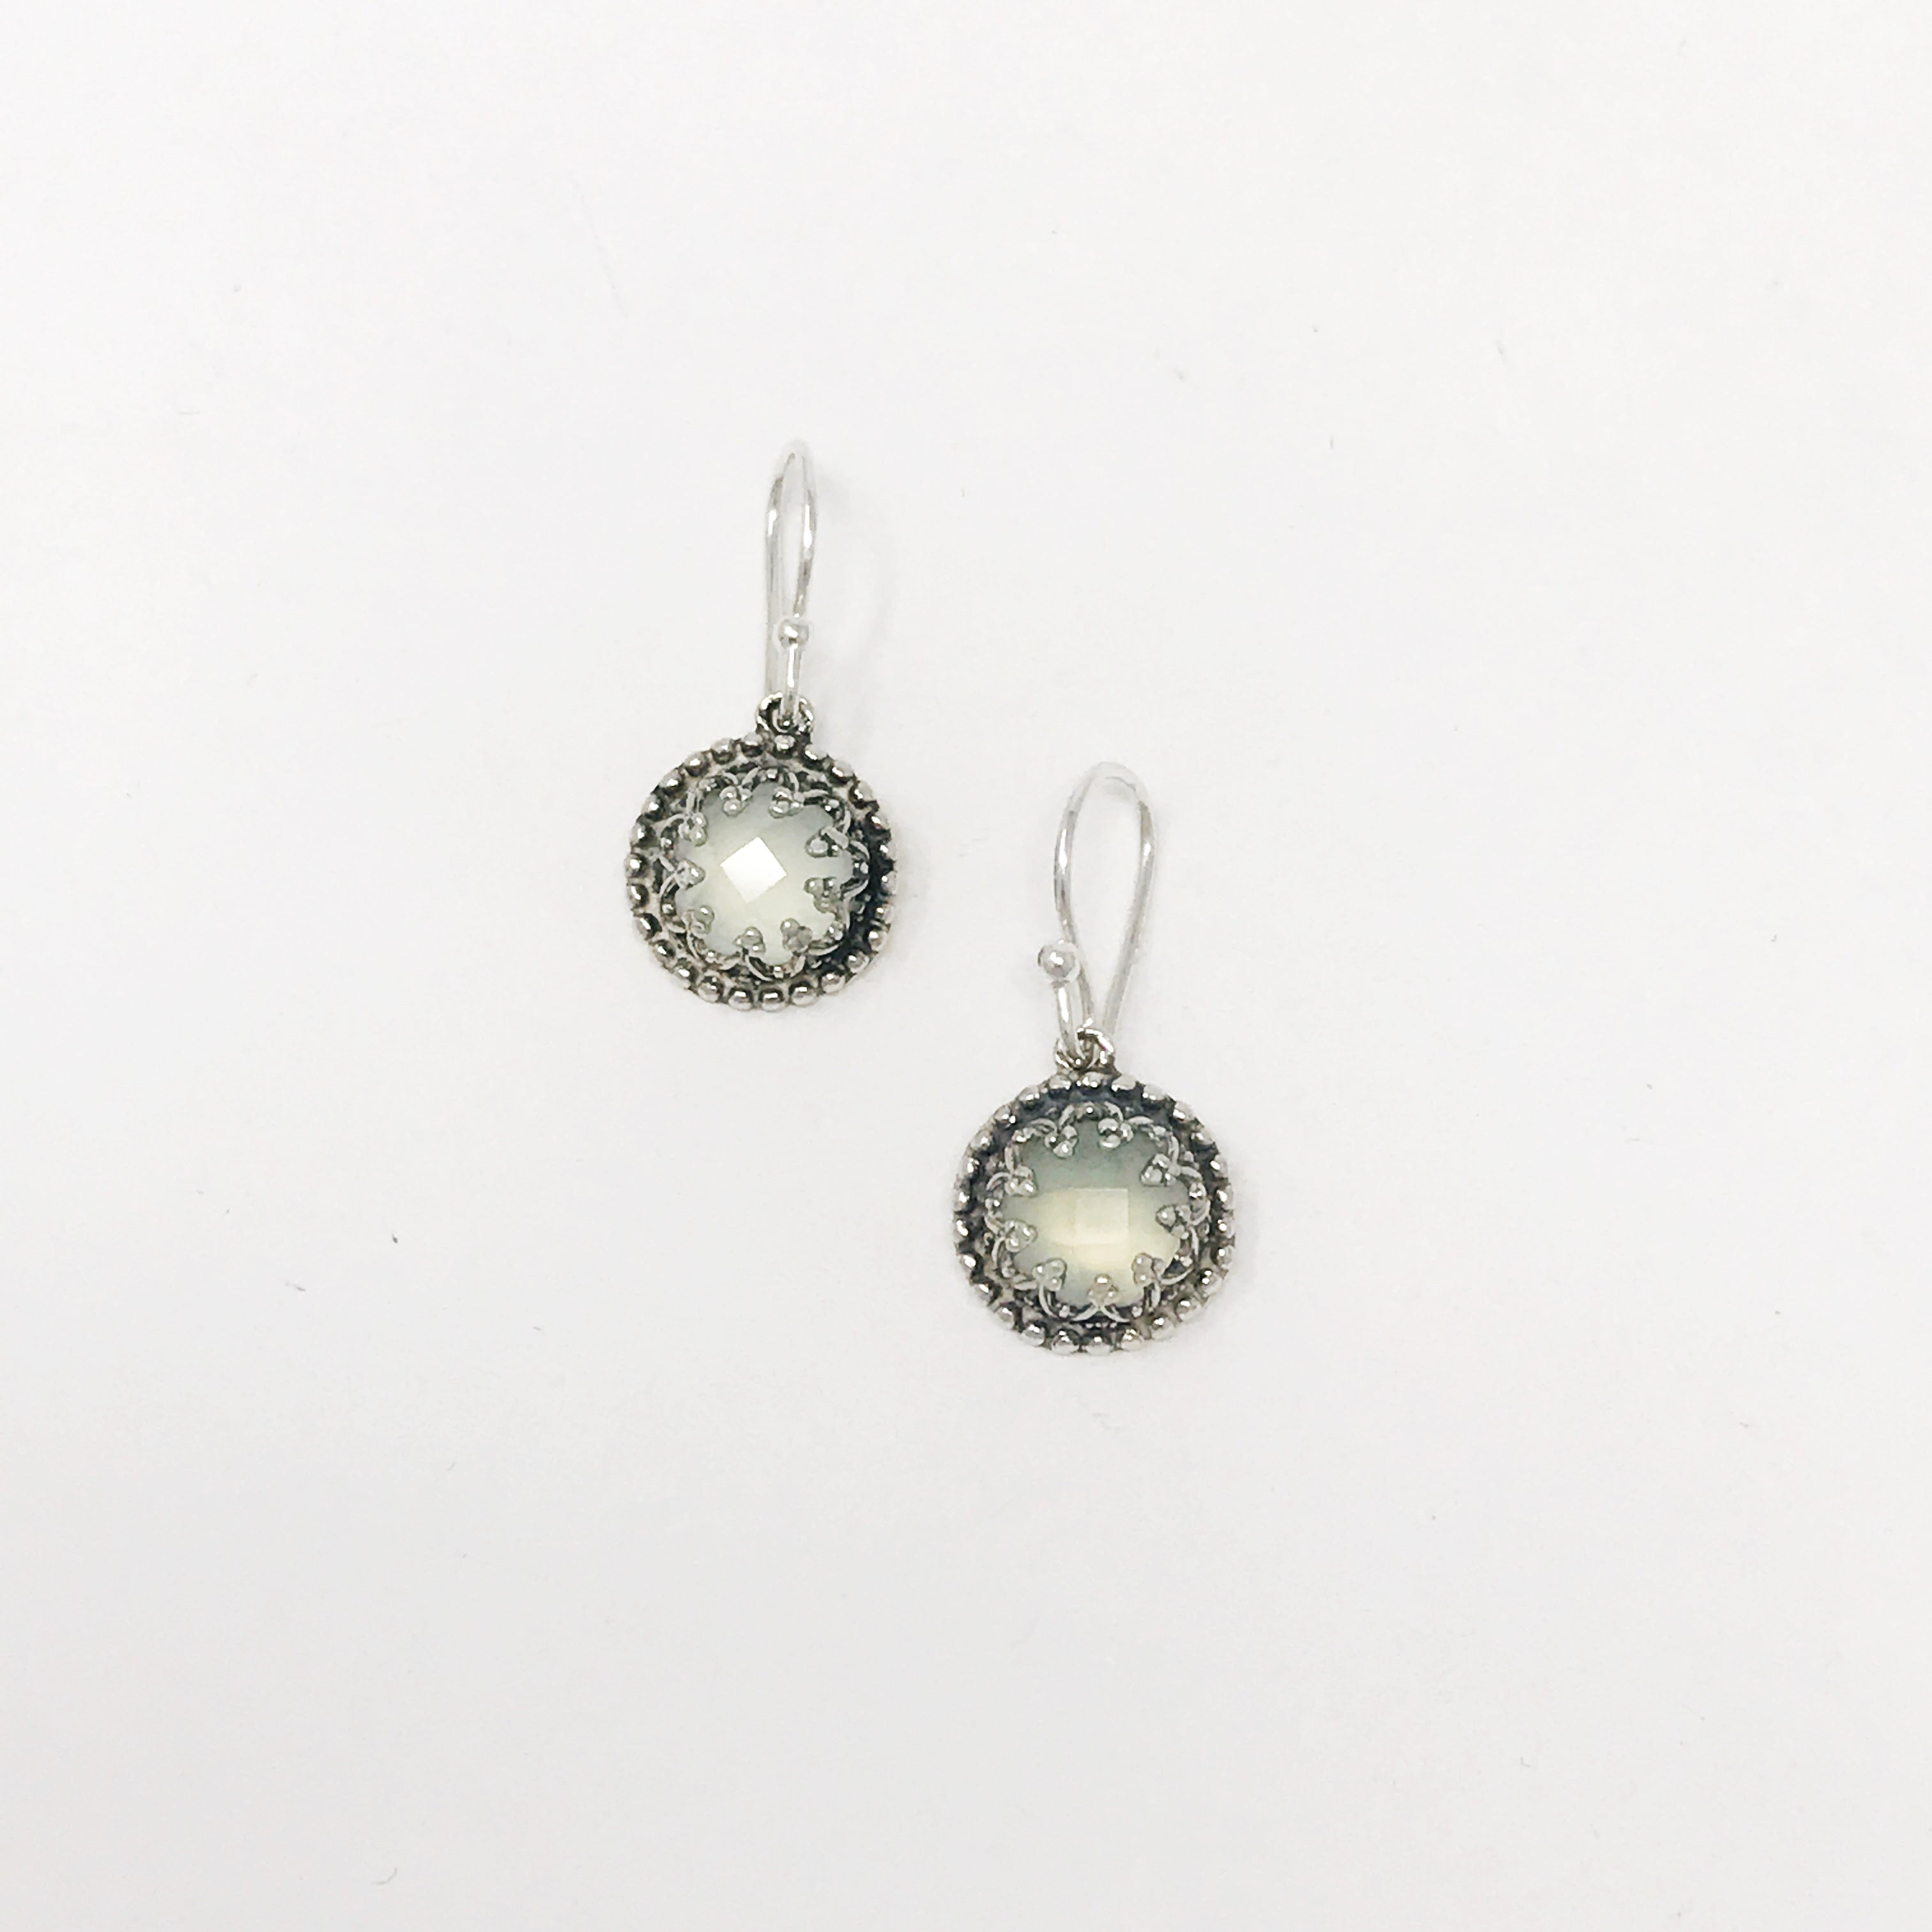 Silver and Aqua Chalcedony Filigree Earring